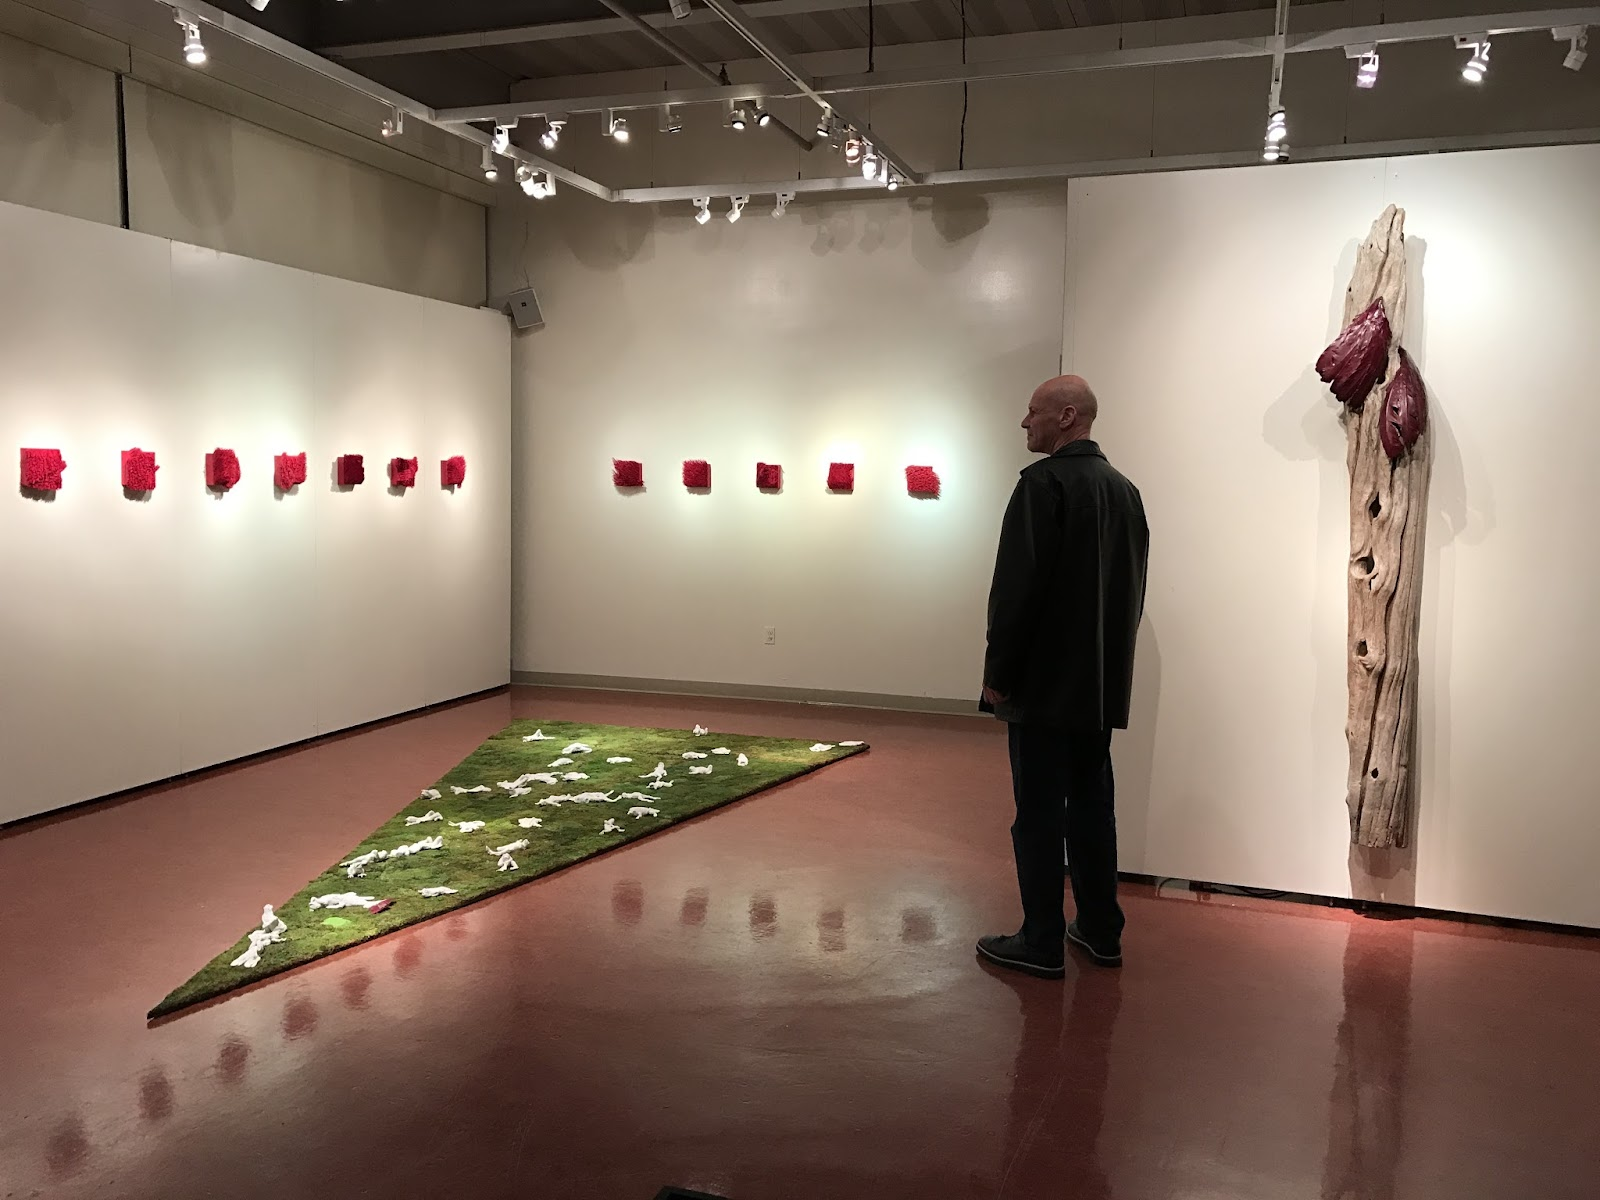 Pictured: Christian Bernard Singer, overlooking Toad Howl and Red II (2016) at the Three Canadian Artists Reflect on the Natural World exhibition at Kean University.